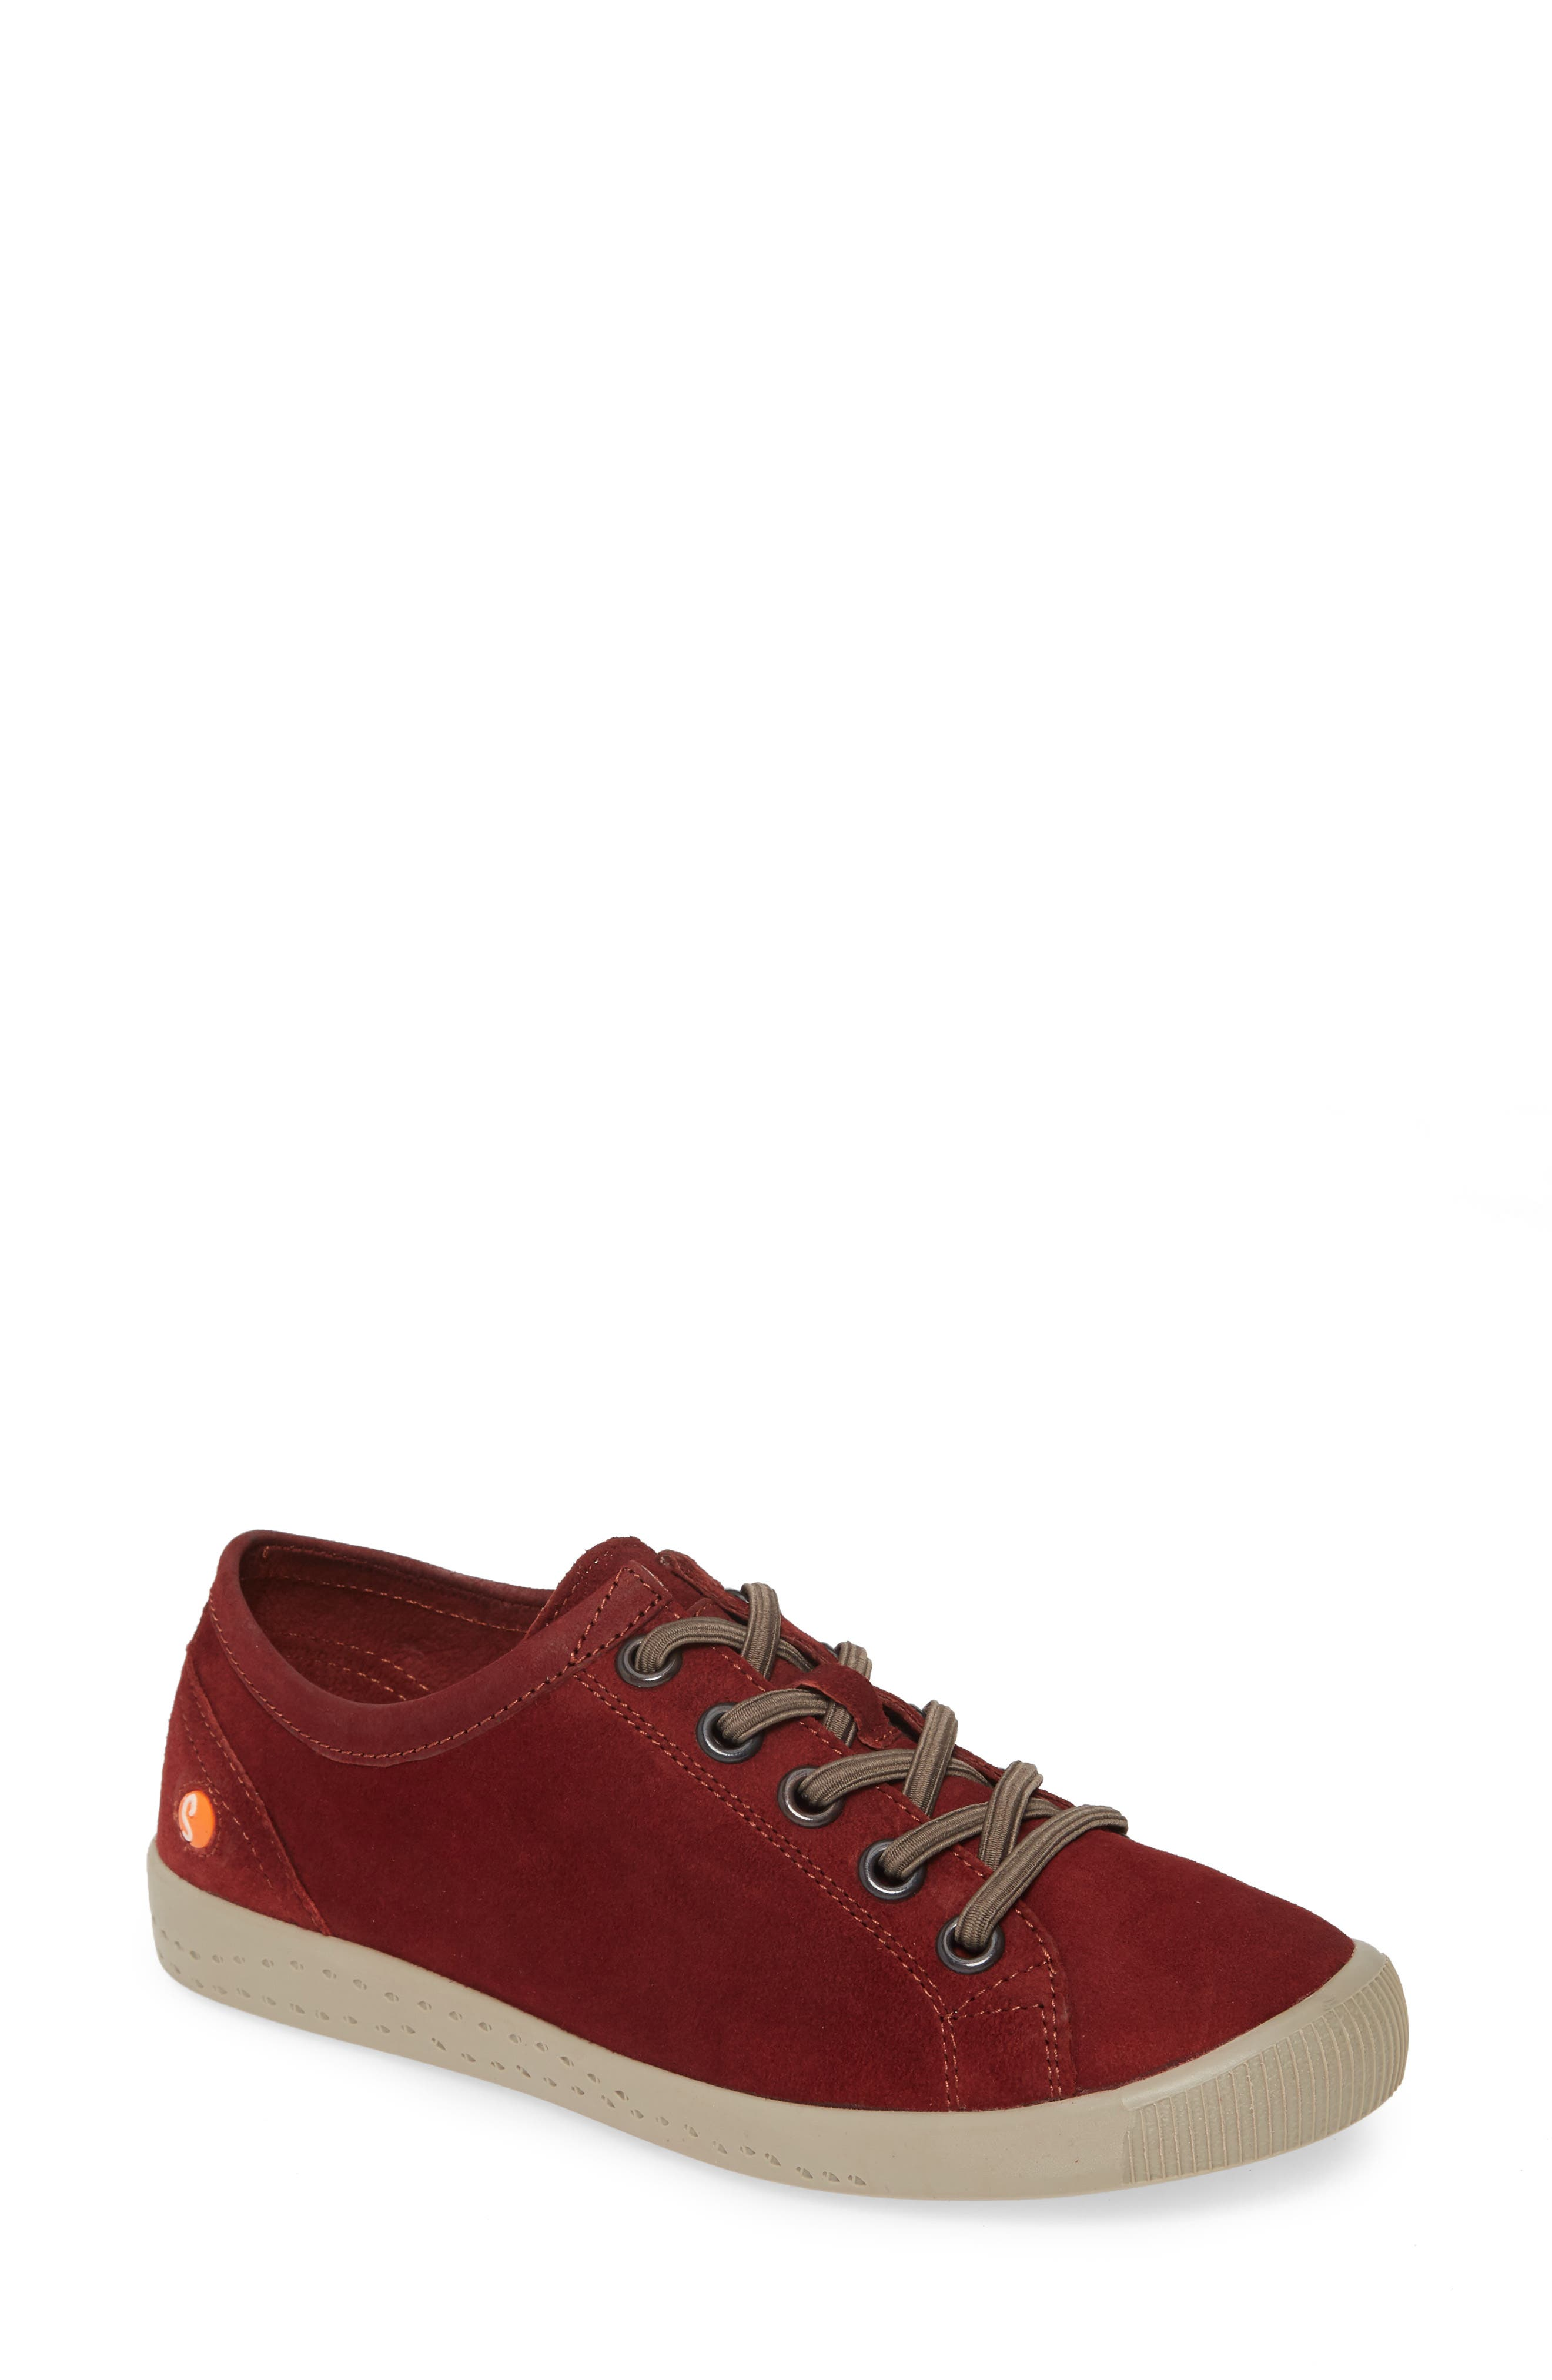 Softinos By Fly London Isla Distressed Sneaker - Burgundy